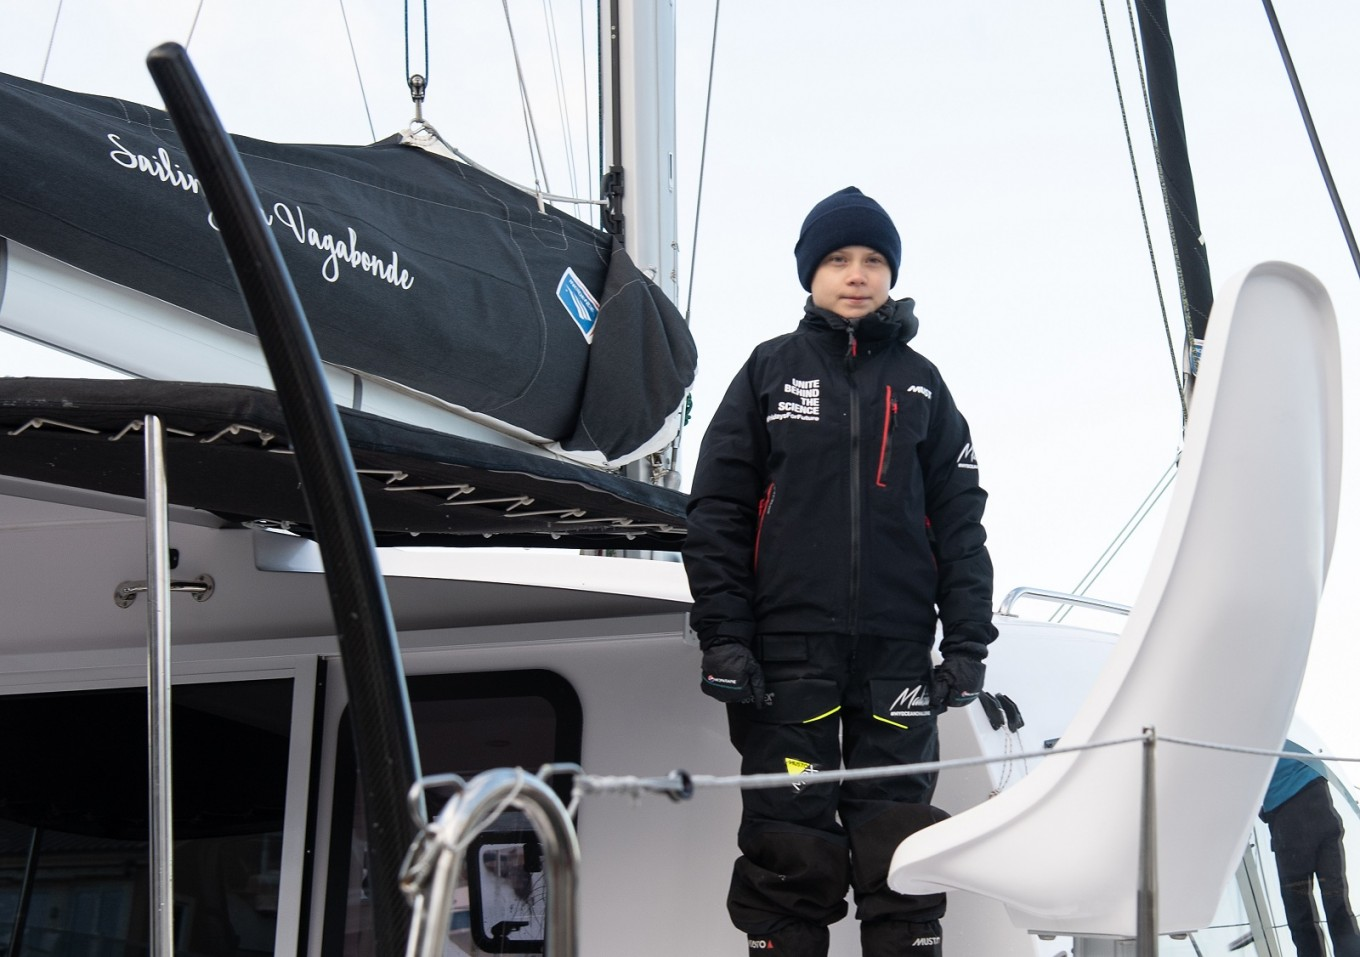 Greta Thunberg sets sail for Spain ahead of climate summit